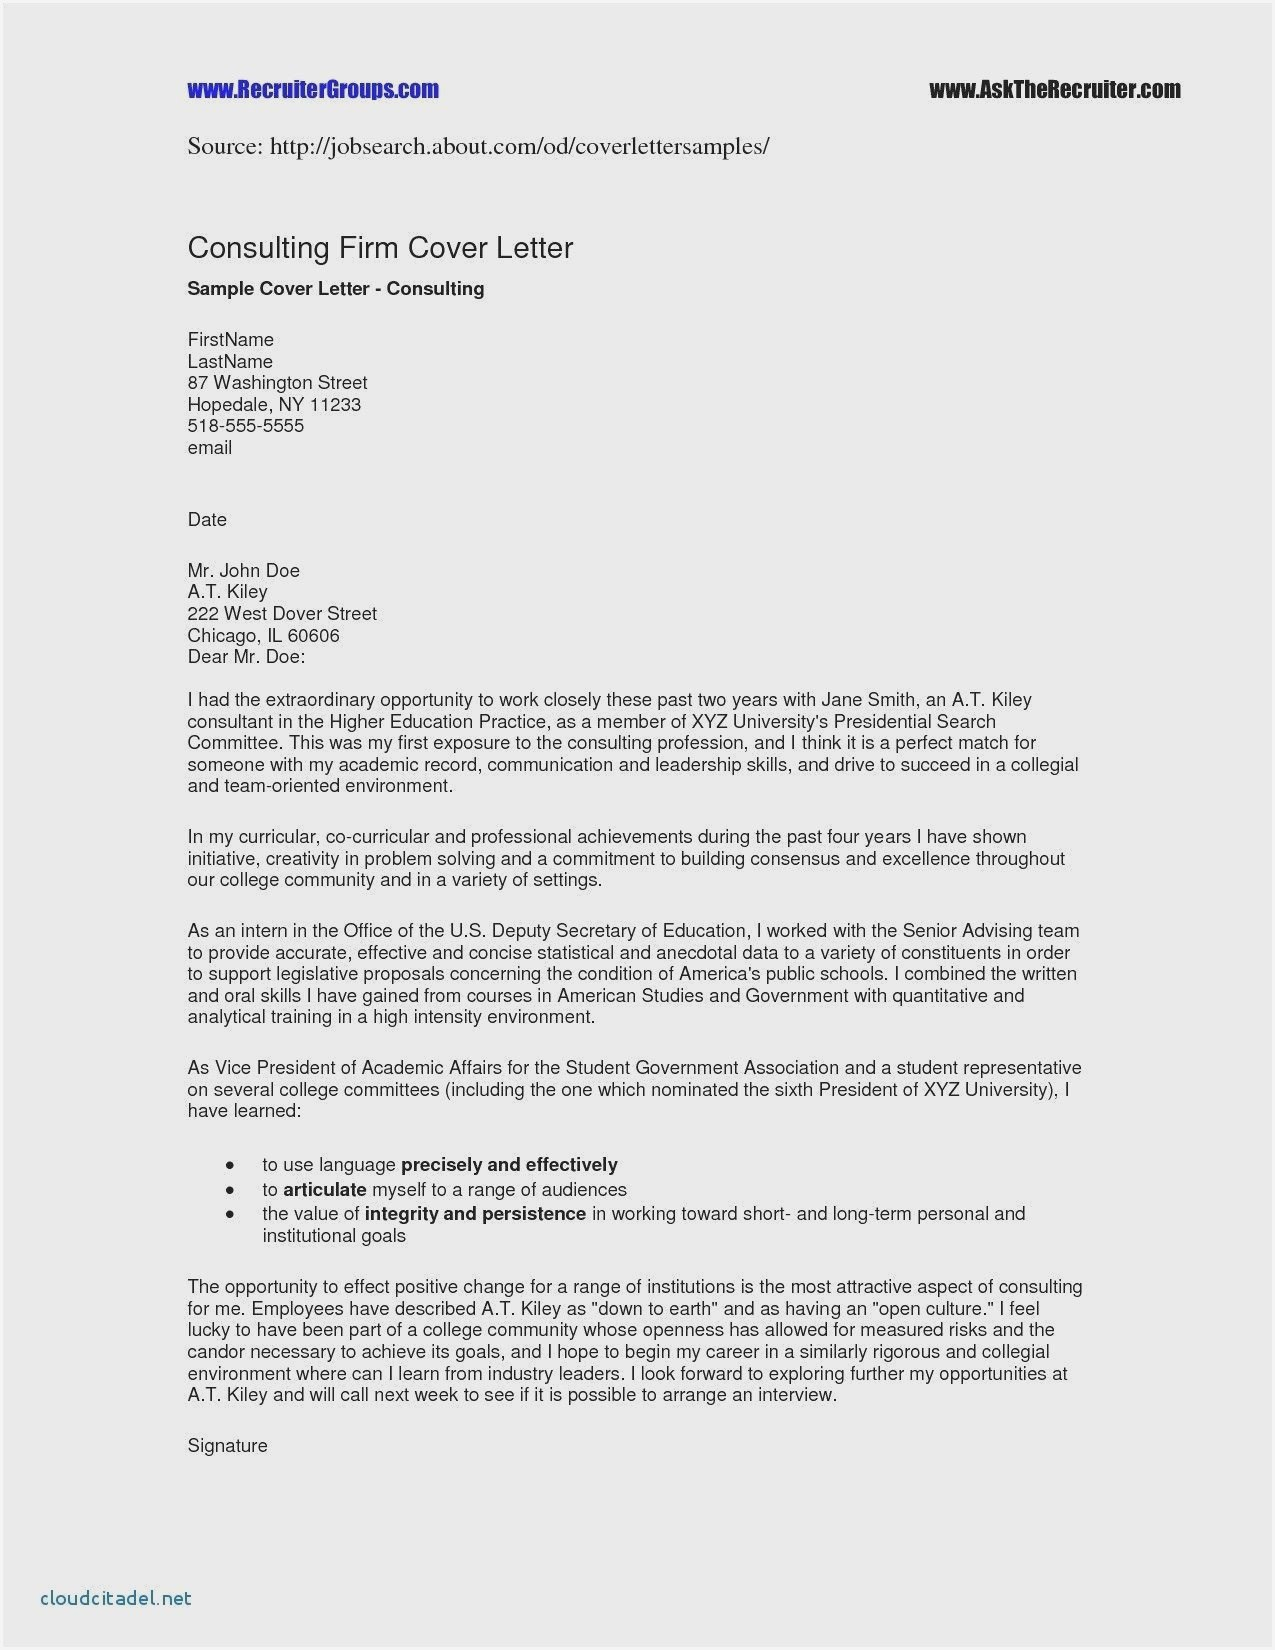 cover letter sample for resume fresh graduate five feet apart competency template Resume Cover Letter For Resume For Fresh Graduate